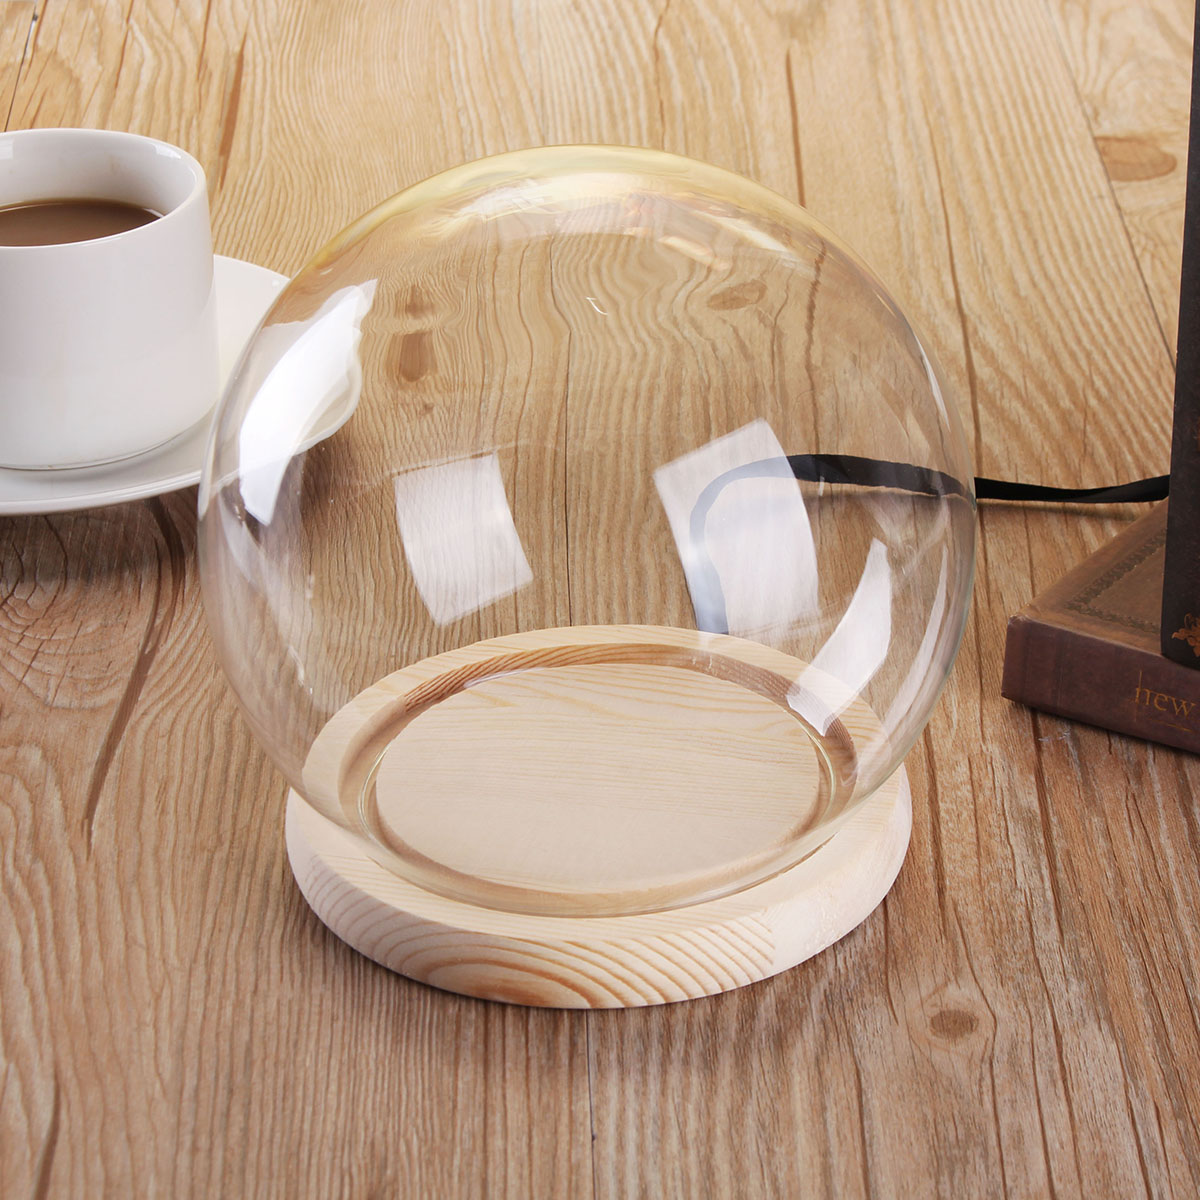 12cm Glass Dome Ball Cloche Globe Bell Jar Tealight Flower Cover Stand Display Room Decorations